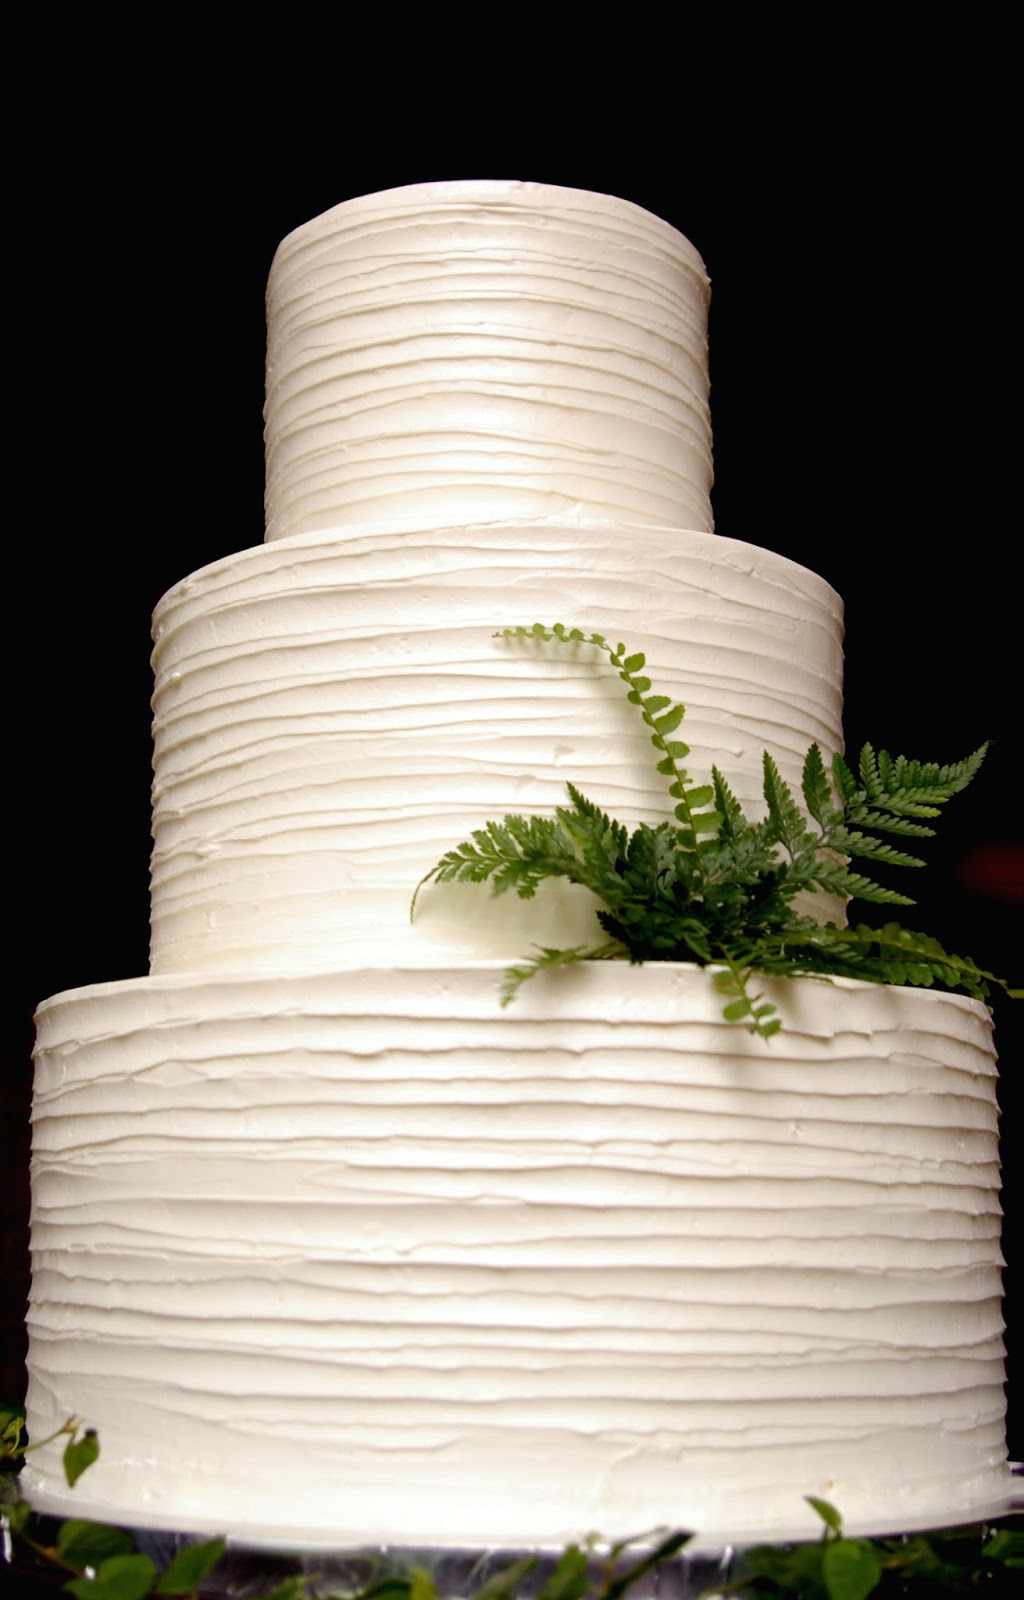 Simple Wedding Cakes Without Fondant  Simple wedding cakes without fondant idea in 2017